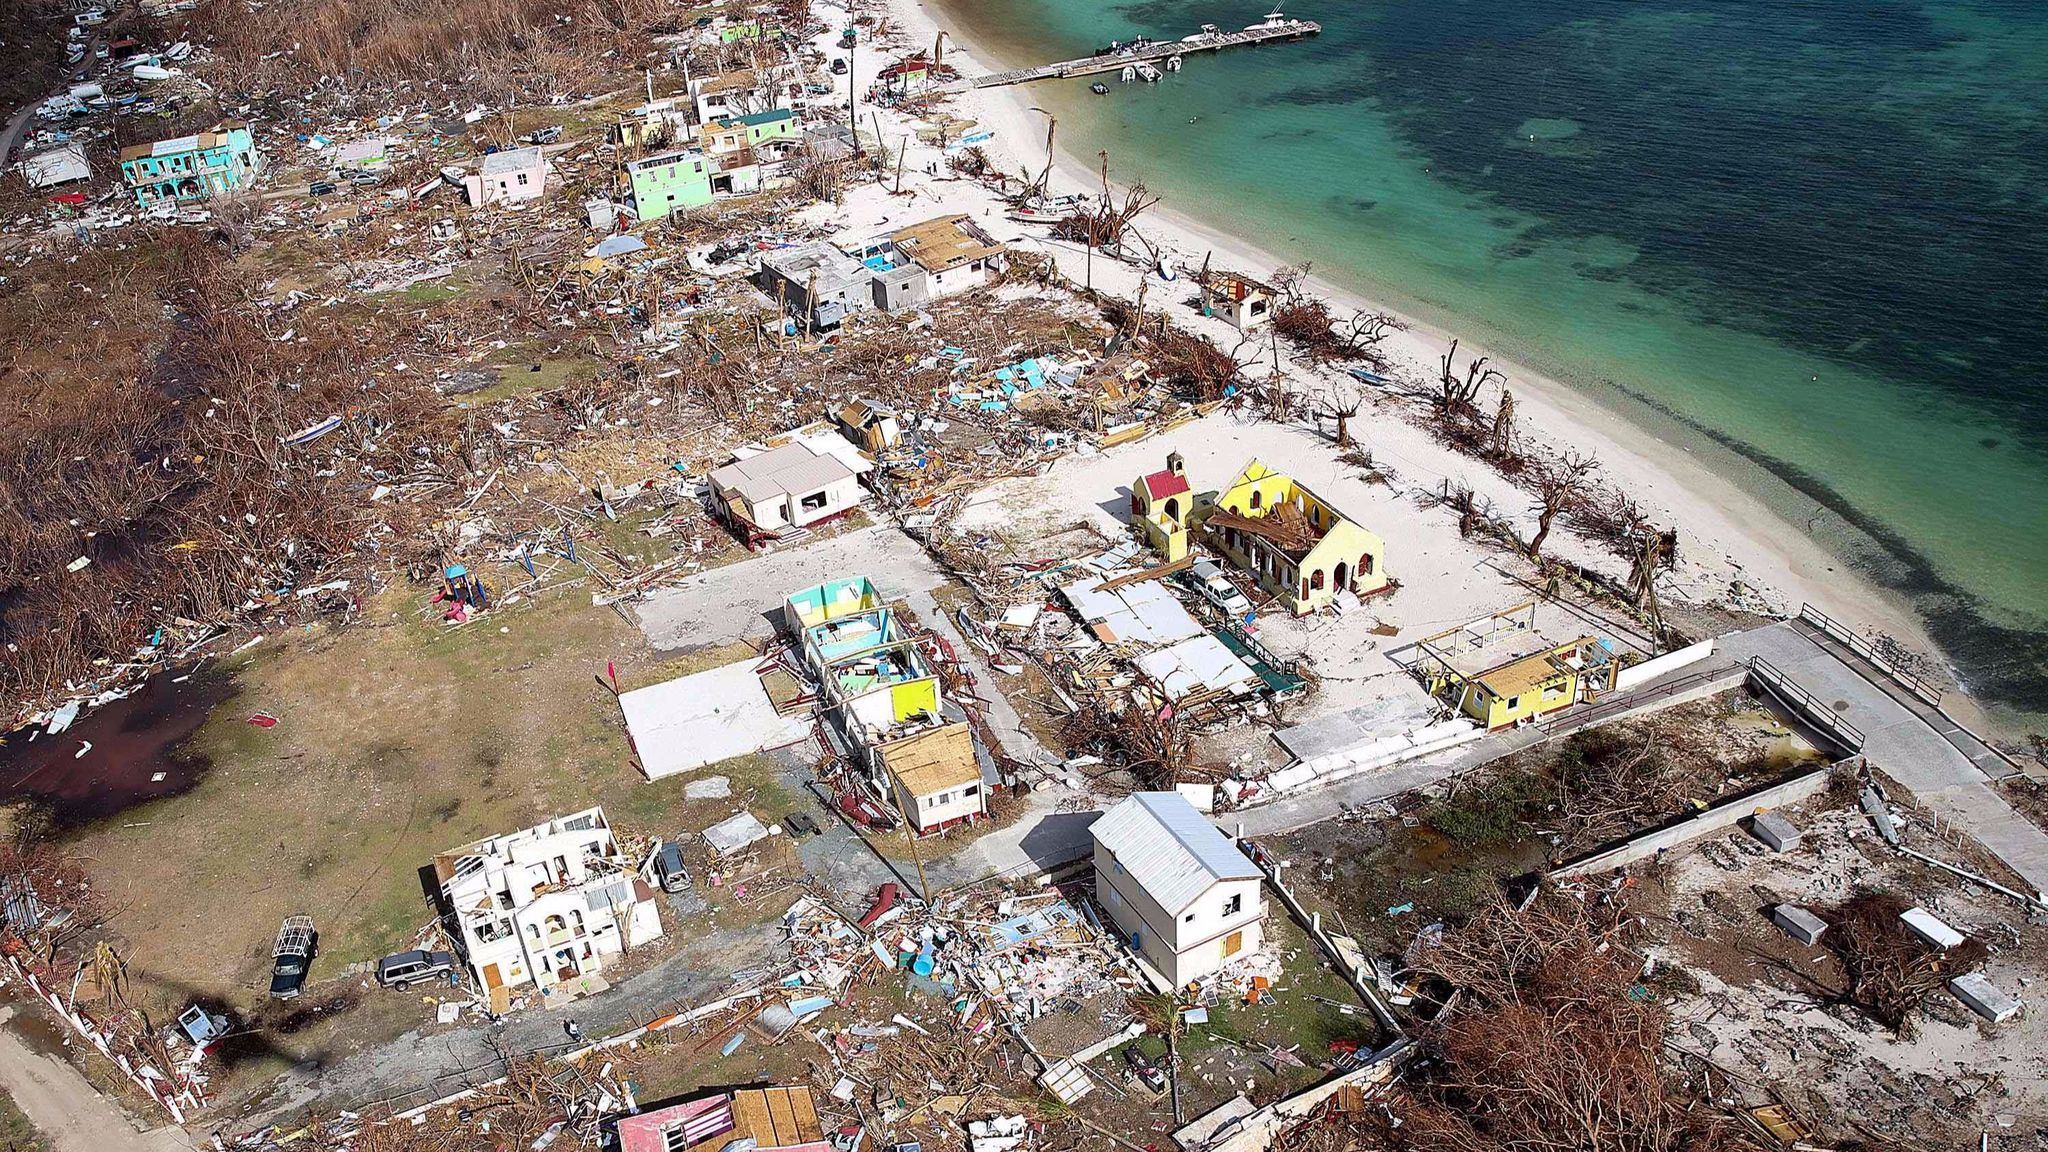 The devastation of the island of Jost Van Dyke in the British Virgin Islands on Sept. 11 after Hurricane Irma.